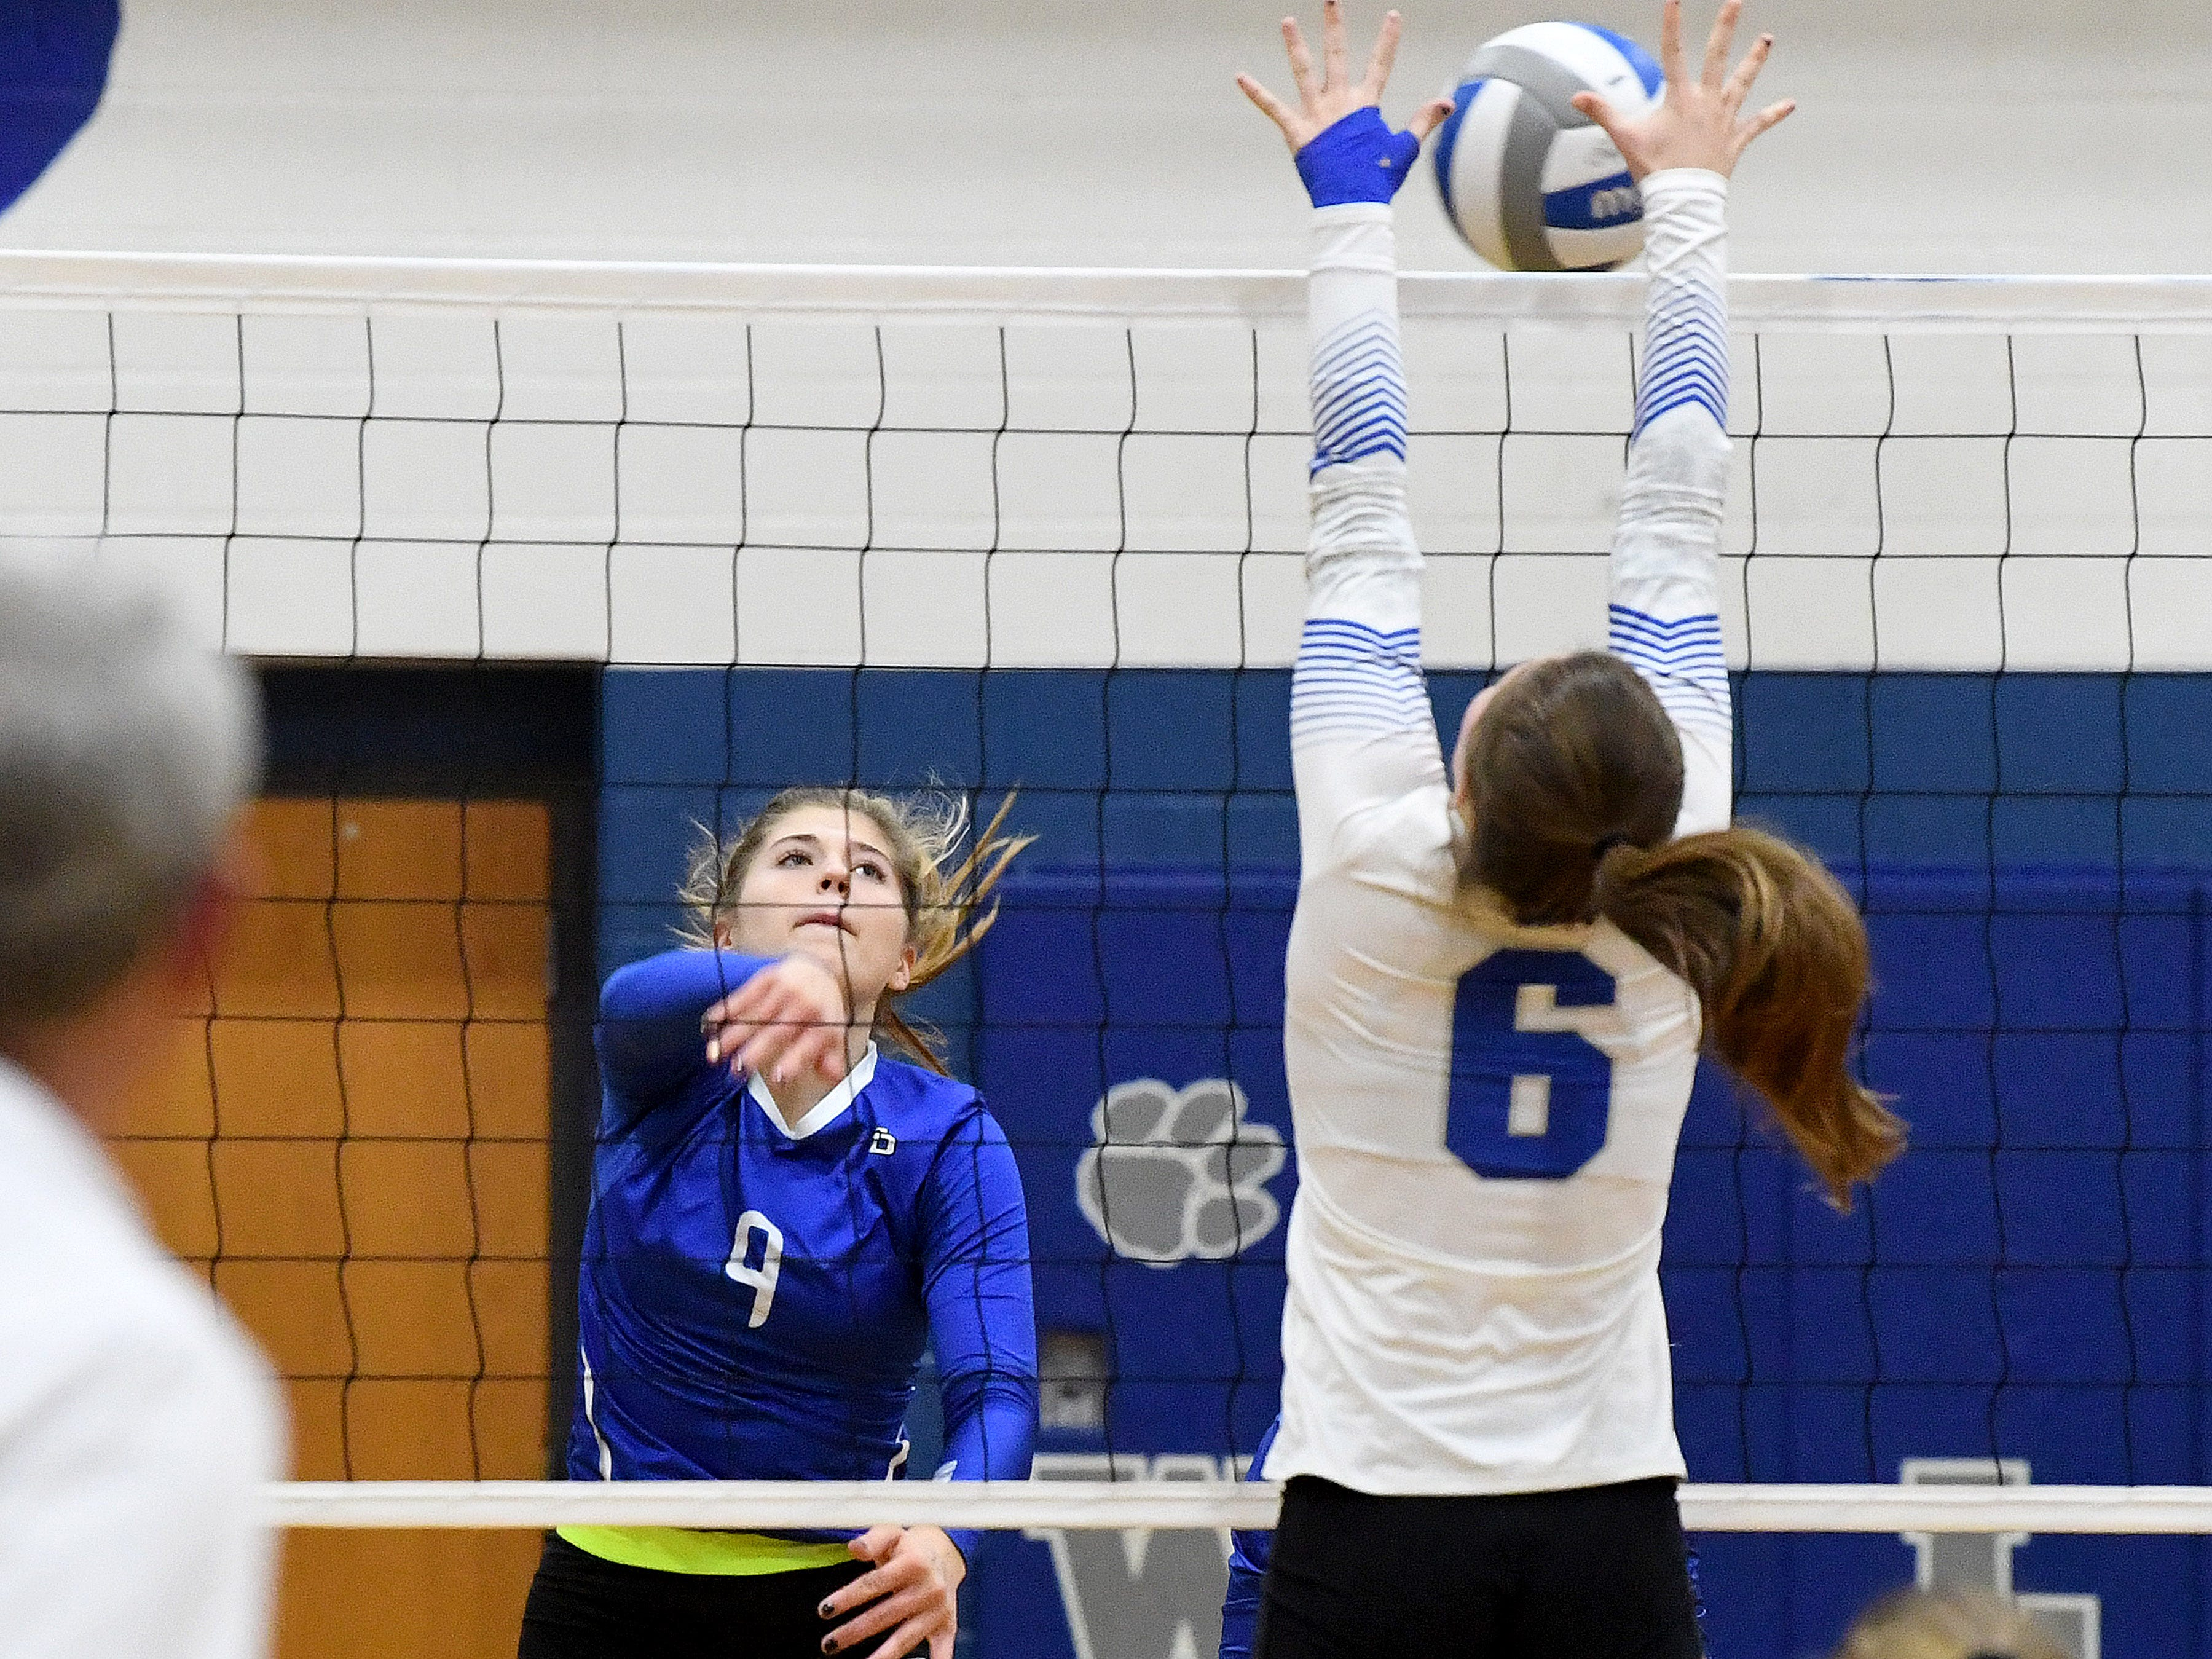 Fort Defiance's Jessi Hull spikes the ball past Rockbridge County's Jaydyn Clemmer during a Region 3C semifinal match played in Lexington on Monday, Nov. 5, 2018.